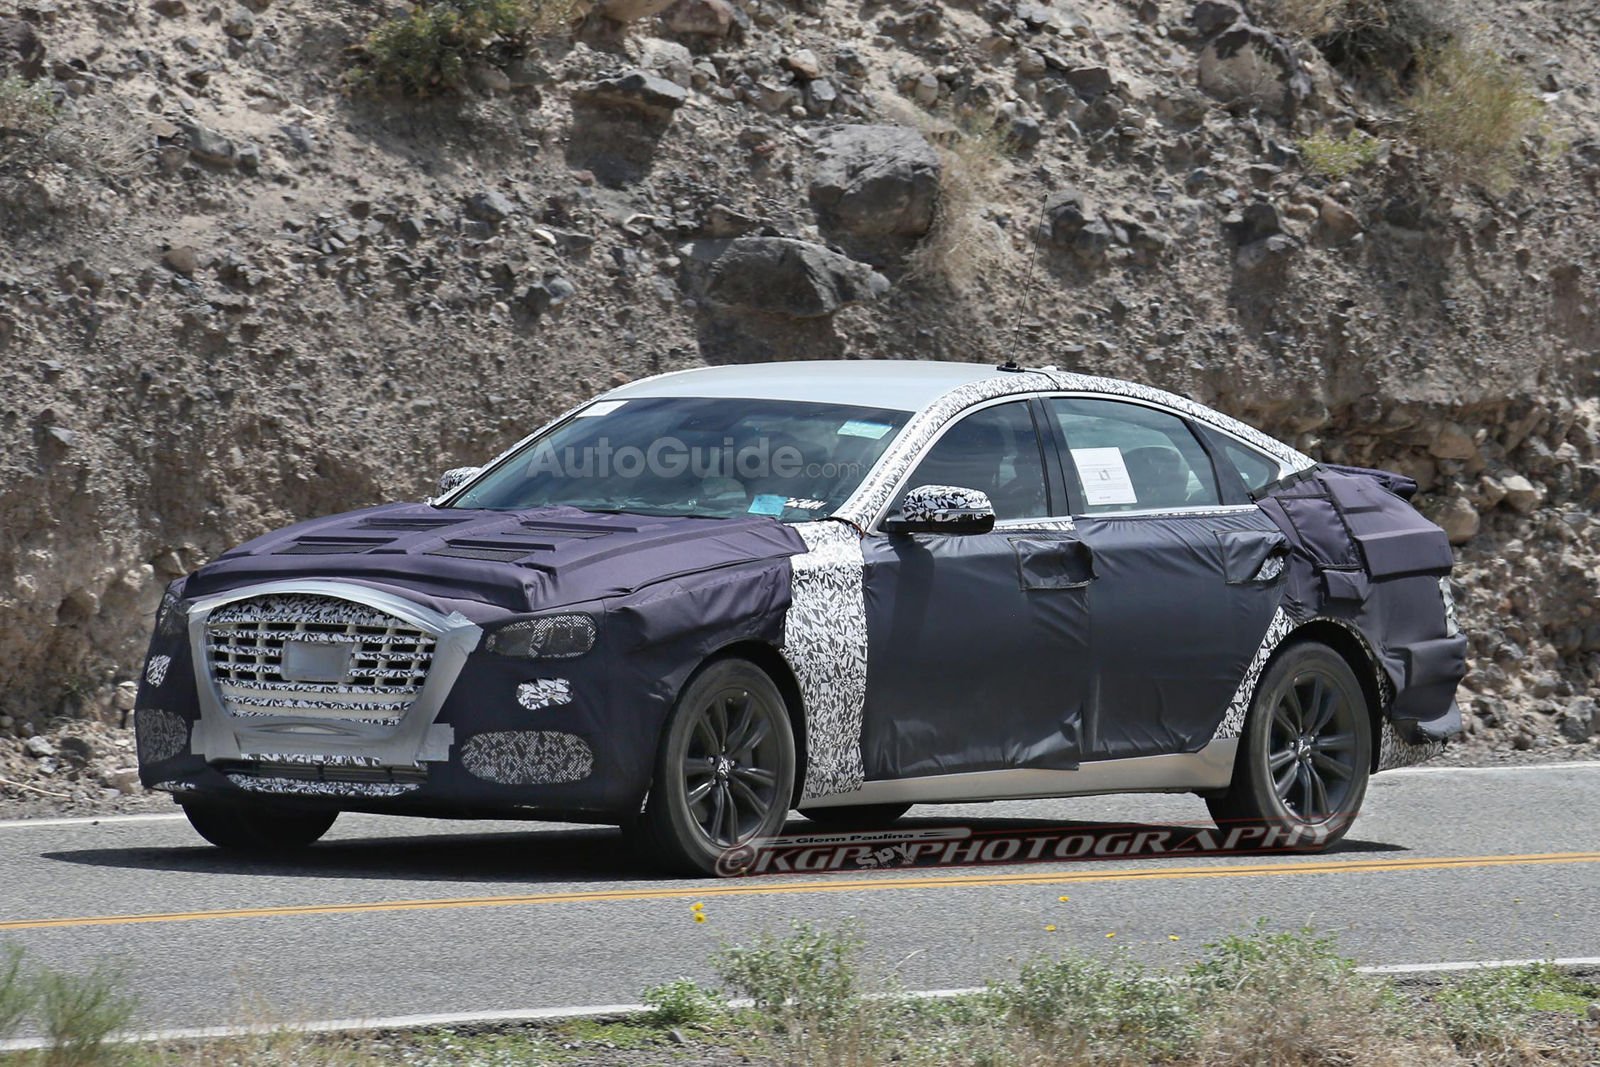 2018 Hyundai Genesis Sedan Caught Testing Twin Turbo V6